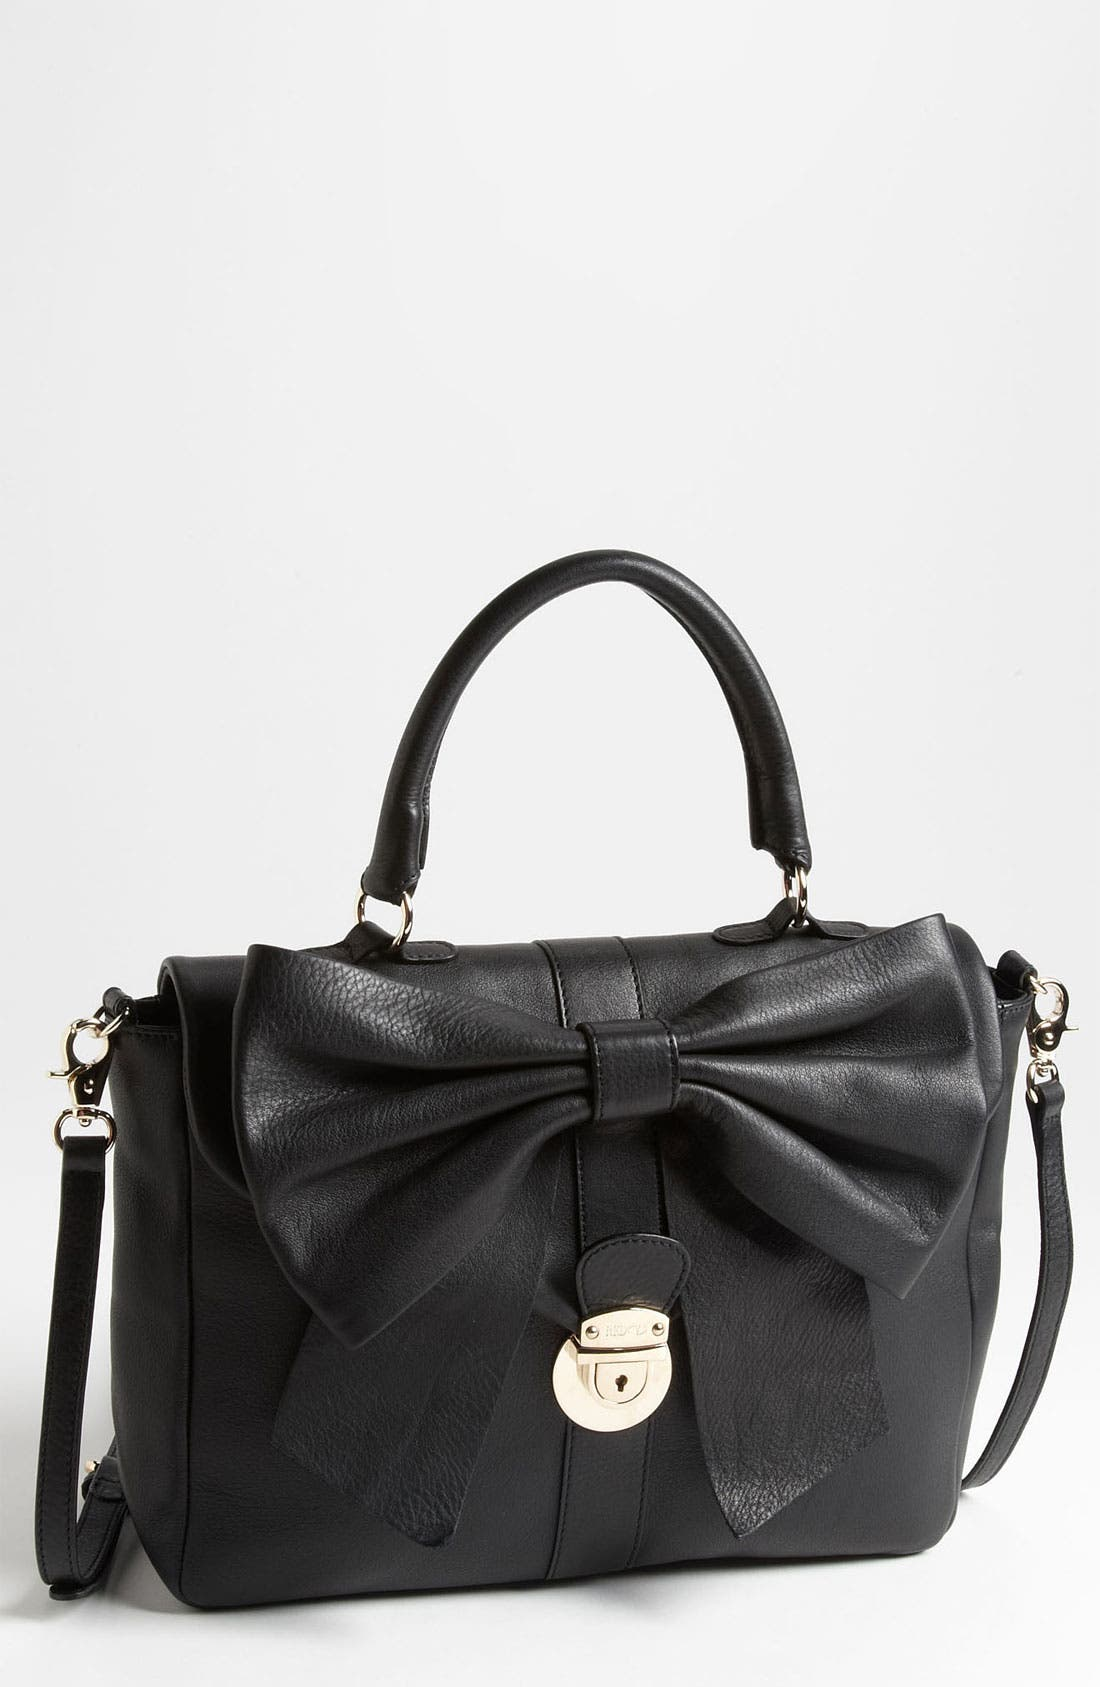 Main Image - RED Valentino 'Bow' Top Handle Leather Satchel